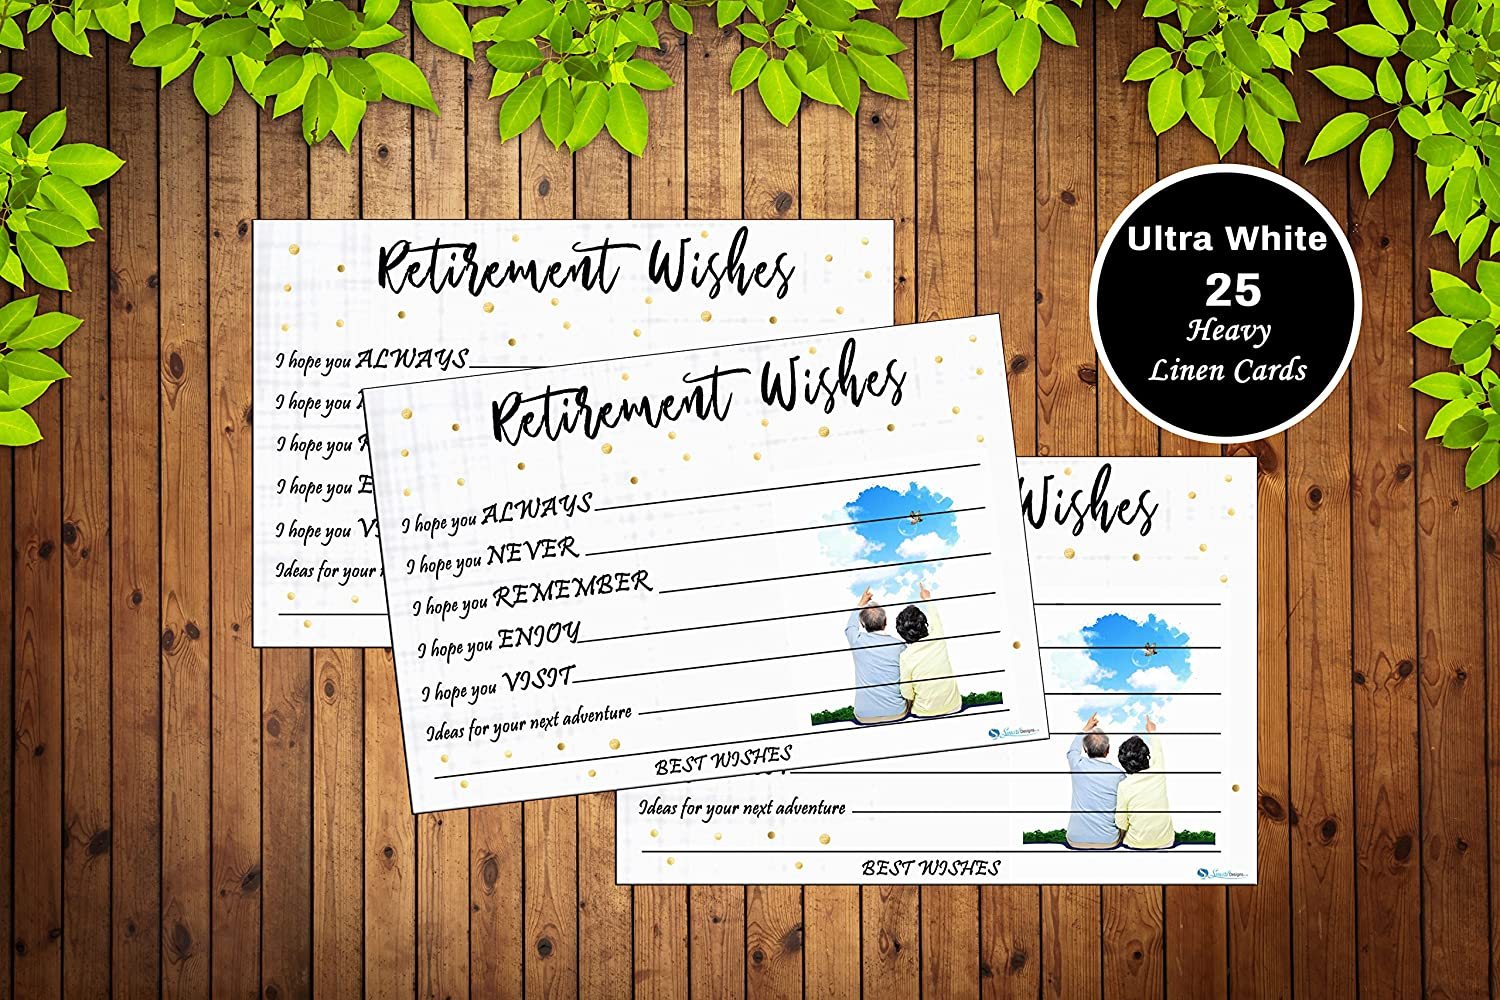 25 Retirement Party Advice Well Wish Card For Men Or Women Retired Supplies And Decorations Happy Retiree Celebration Gift Bucket List Wish Jar Funny Personalized Officially Retired Linen Card Set Amazon In Office